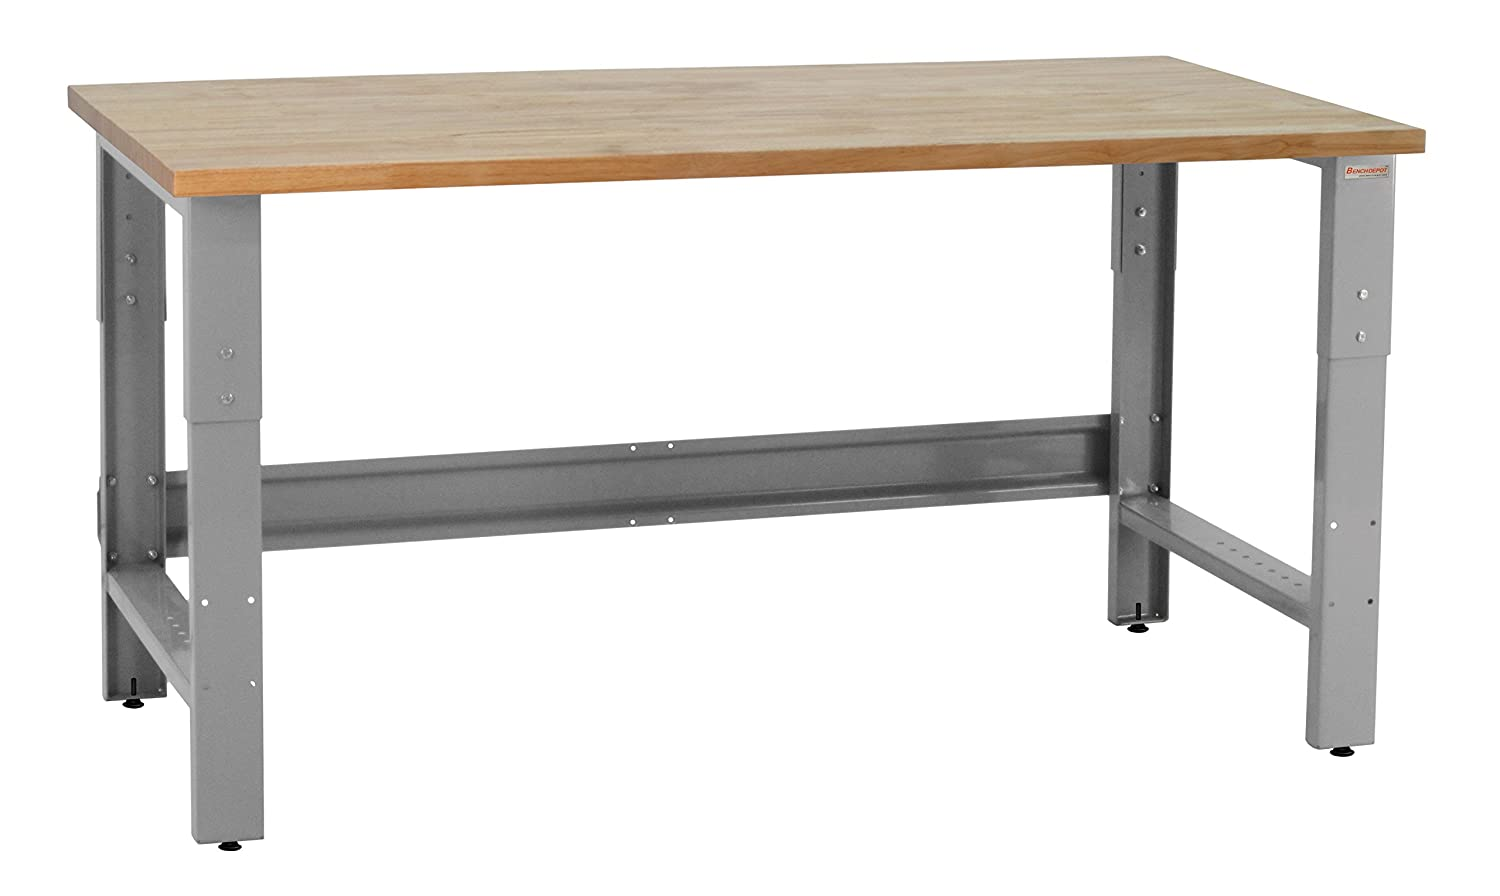 Pleasant Benchpro Roosevelt Workbench Heavy Duty Steel With 1 Chemical Resistant Phenolic Resin Top 1 200 Lb Capacity 24 Depth X 48 Length 30 36 Gmtry Best Dining Table And Chair Ideas Images Gmtryco